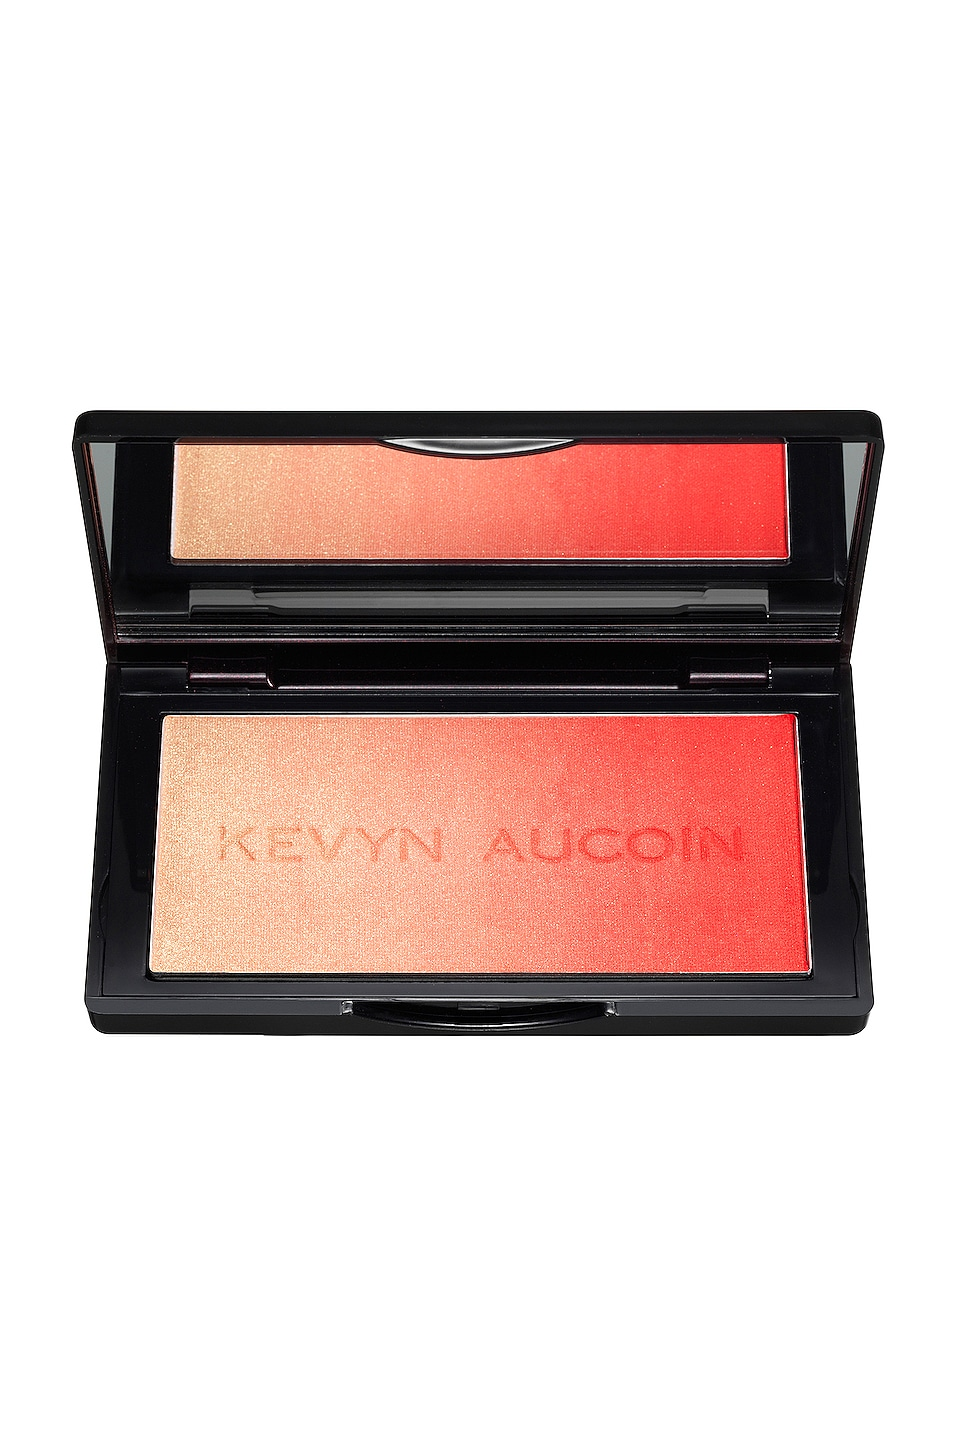 Kevyn Aucoin РУМЯНА THE NEO-BLUSH